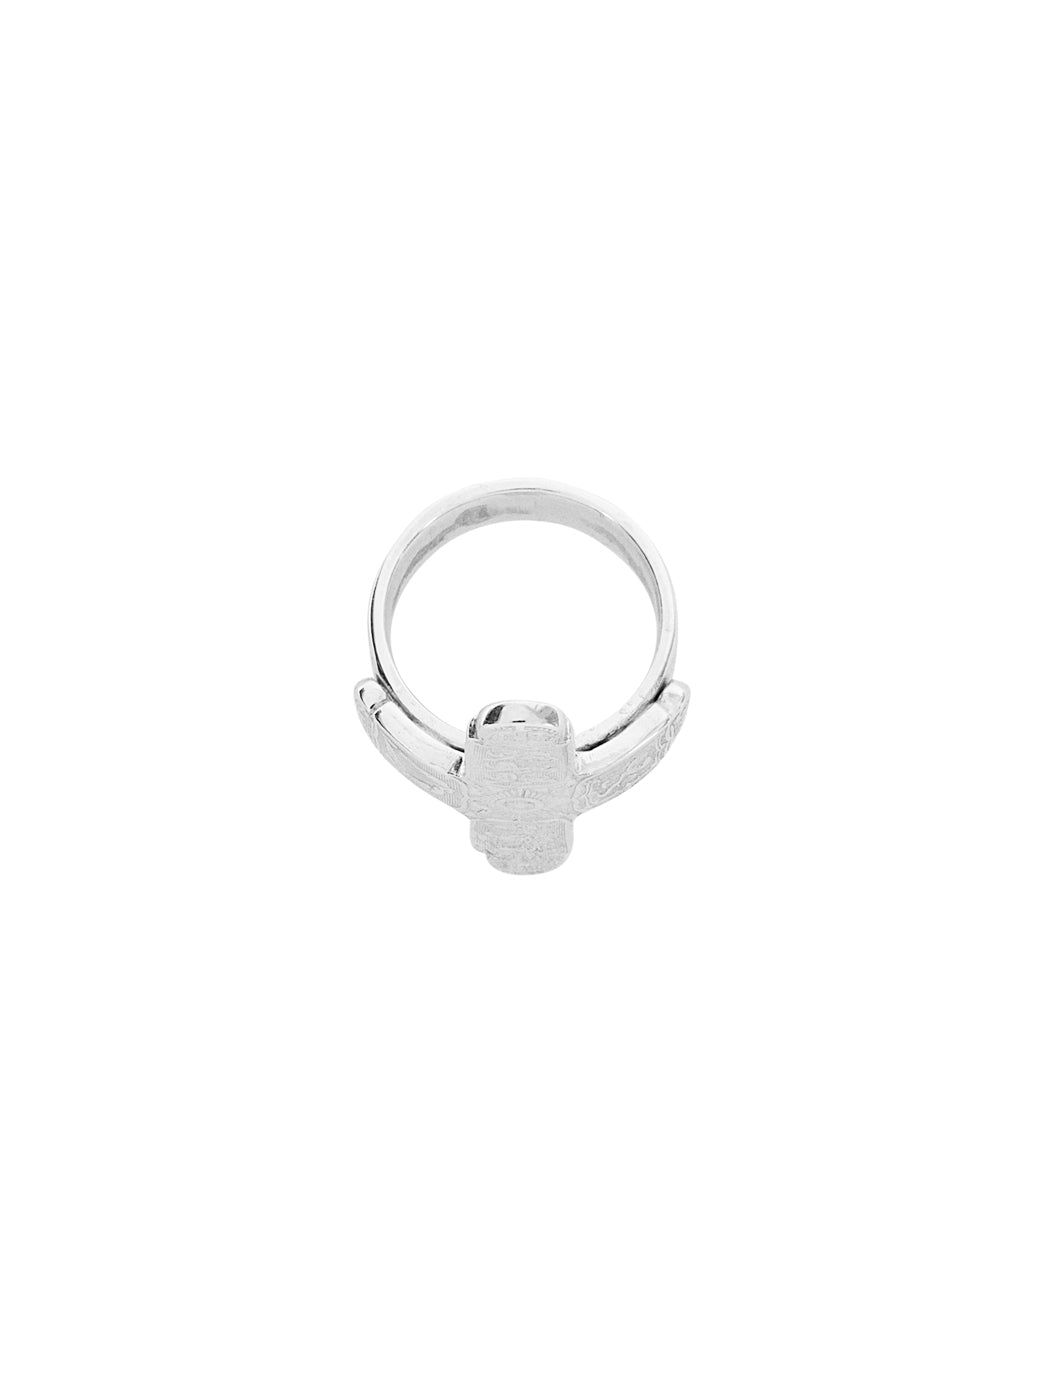 Fiorina Jewellery Men's Small Coin Cross Ring Top View